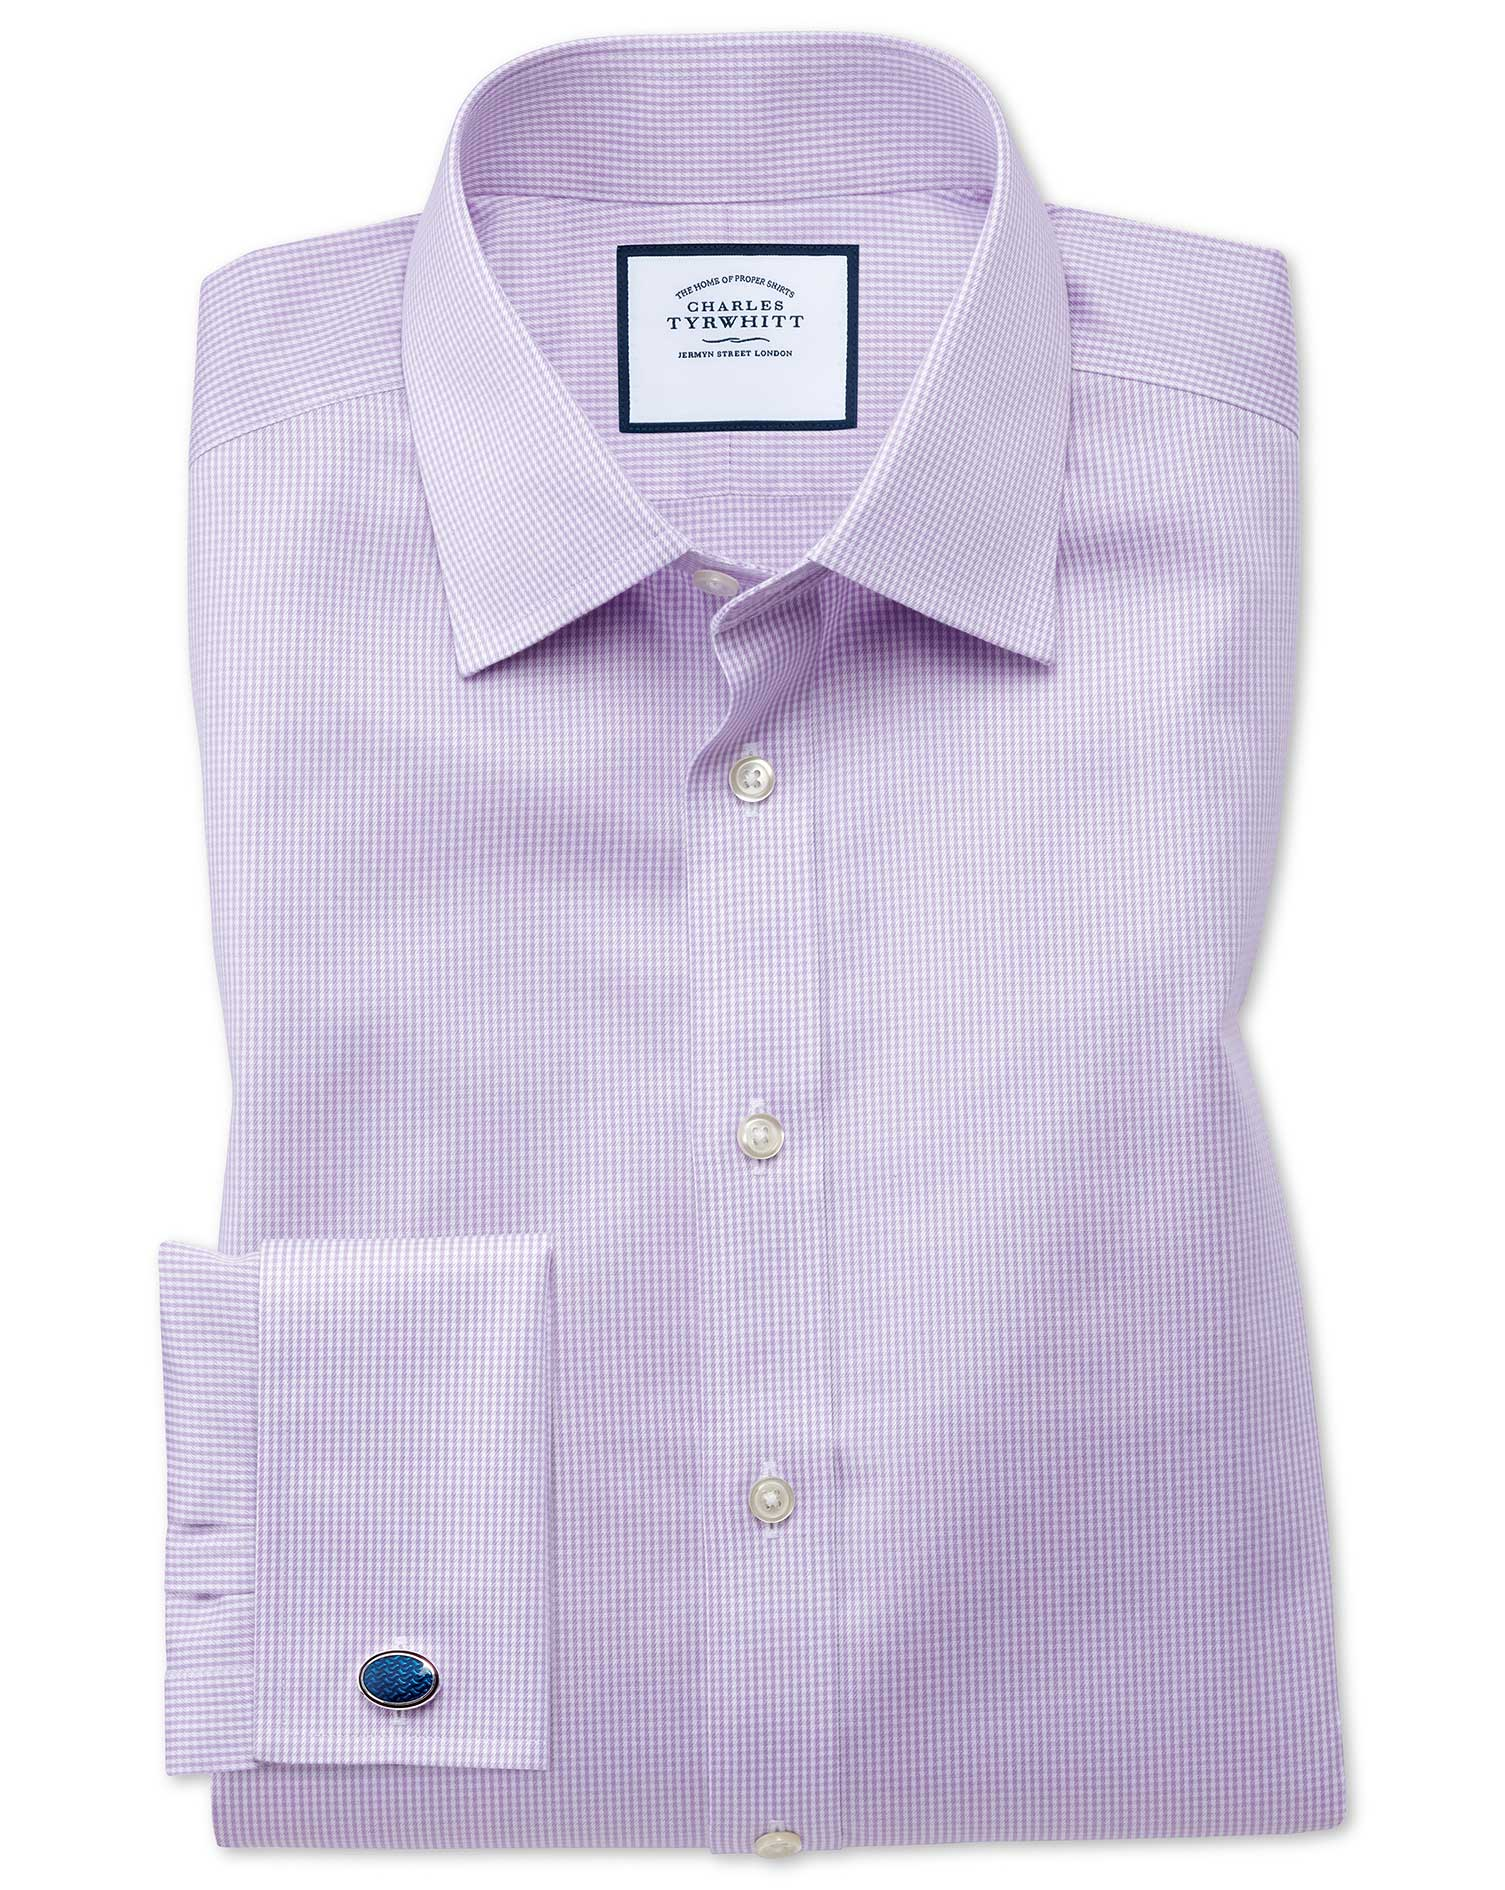 Classic Fit Non-Iron Puppytooth Lilac Cotton Formal Shirt Double Cuff Size 16/33 by Charles Tyrwhitt